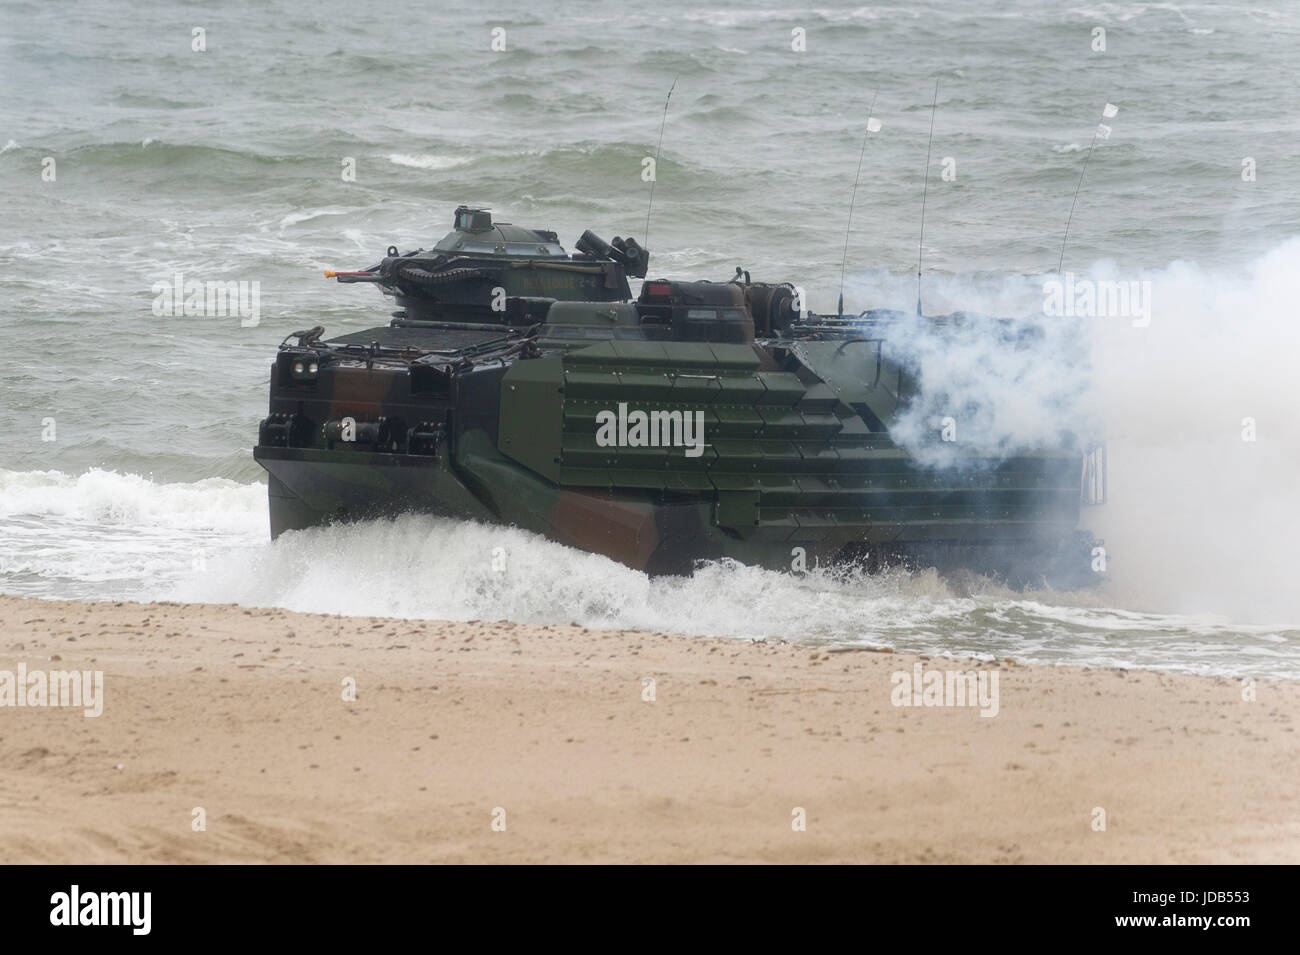 An American Assault Amphibious Vehicle AAV-7 is landing on the beach during the 45th edition of Exercise BALTIC Stock Photo